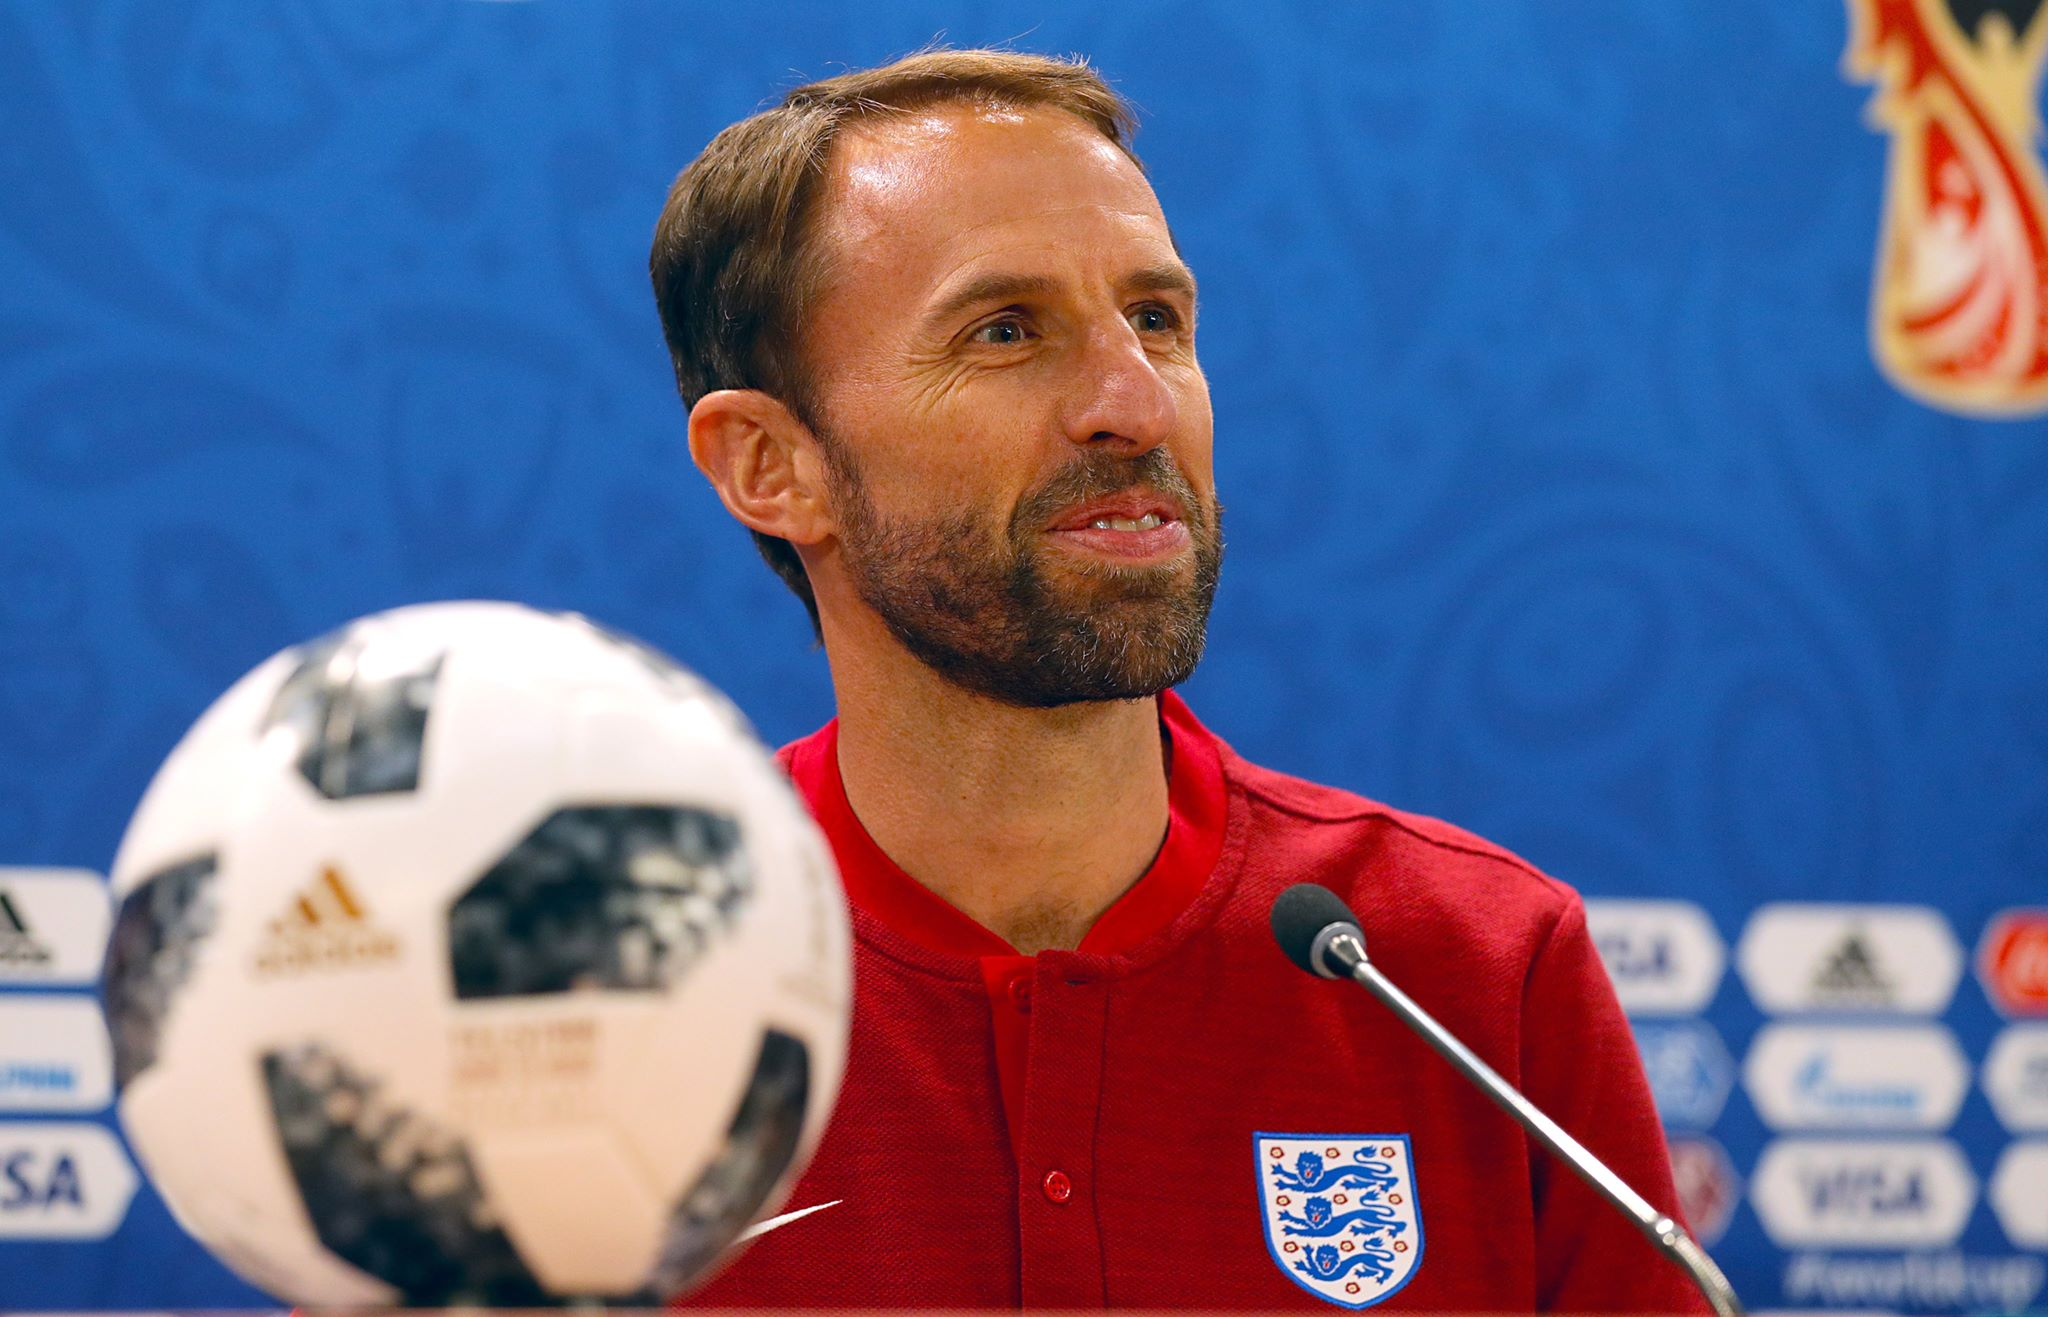 England boss Gareth Southgate: 'I will keep challenging Harry Kane'